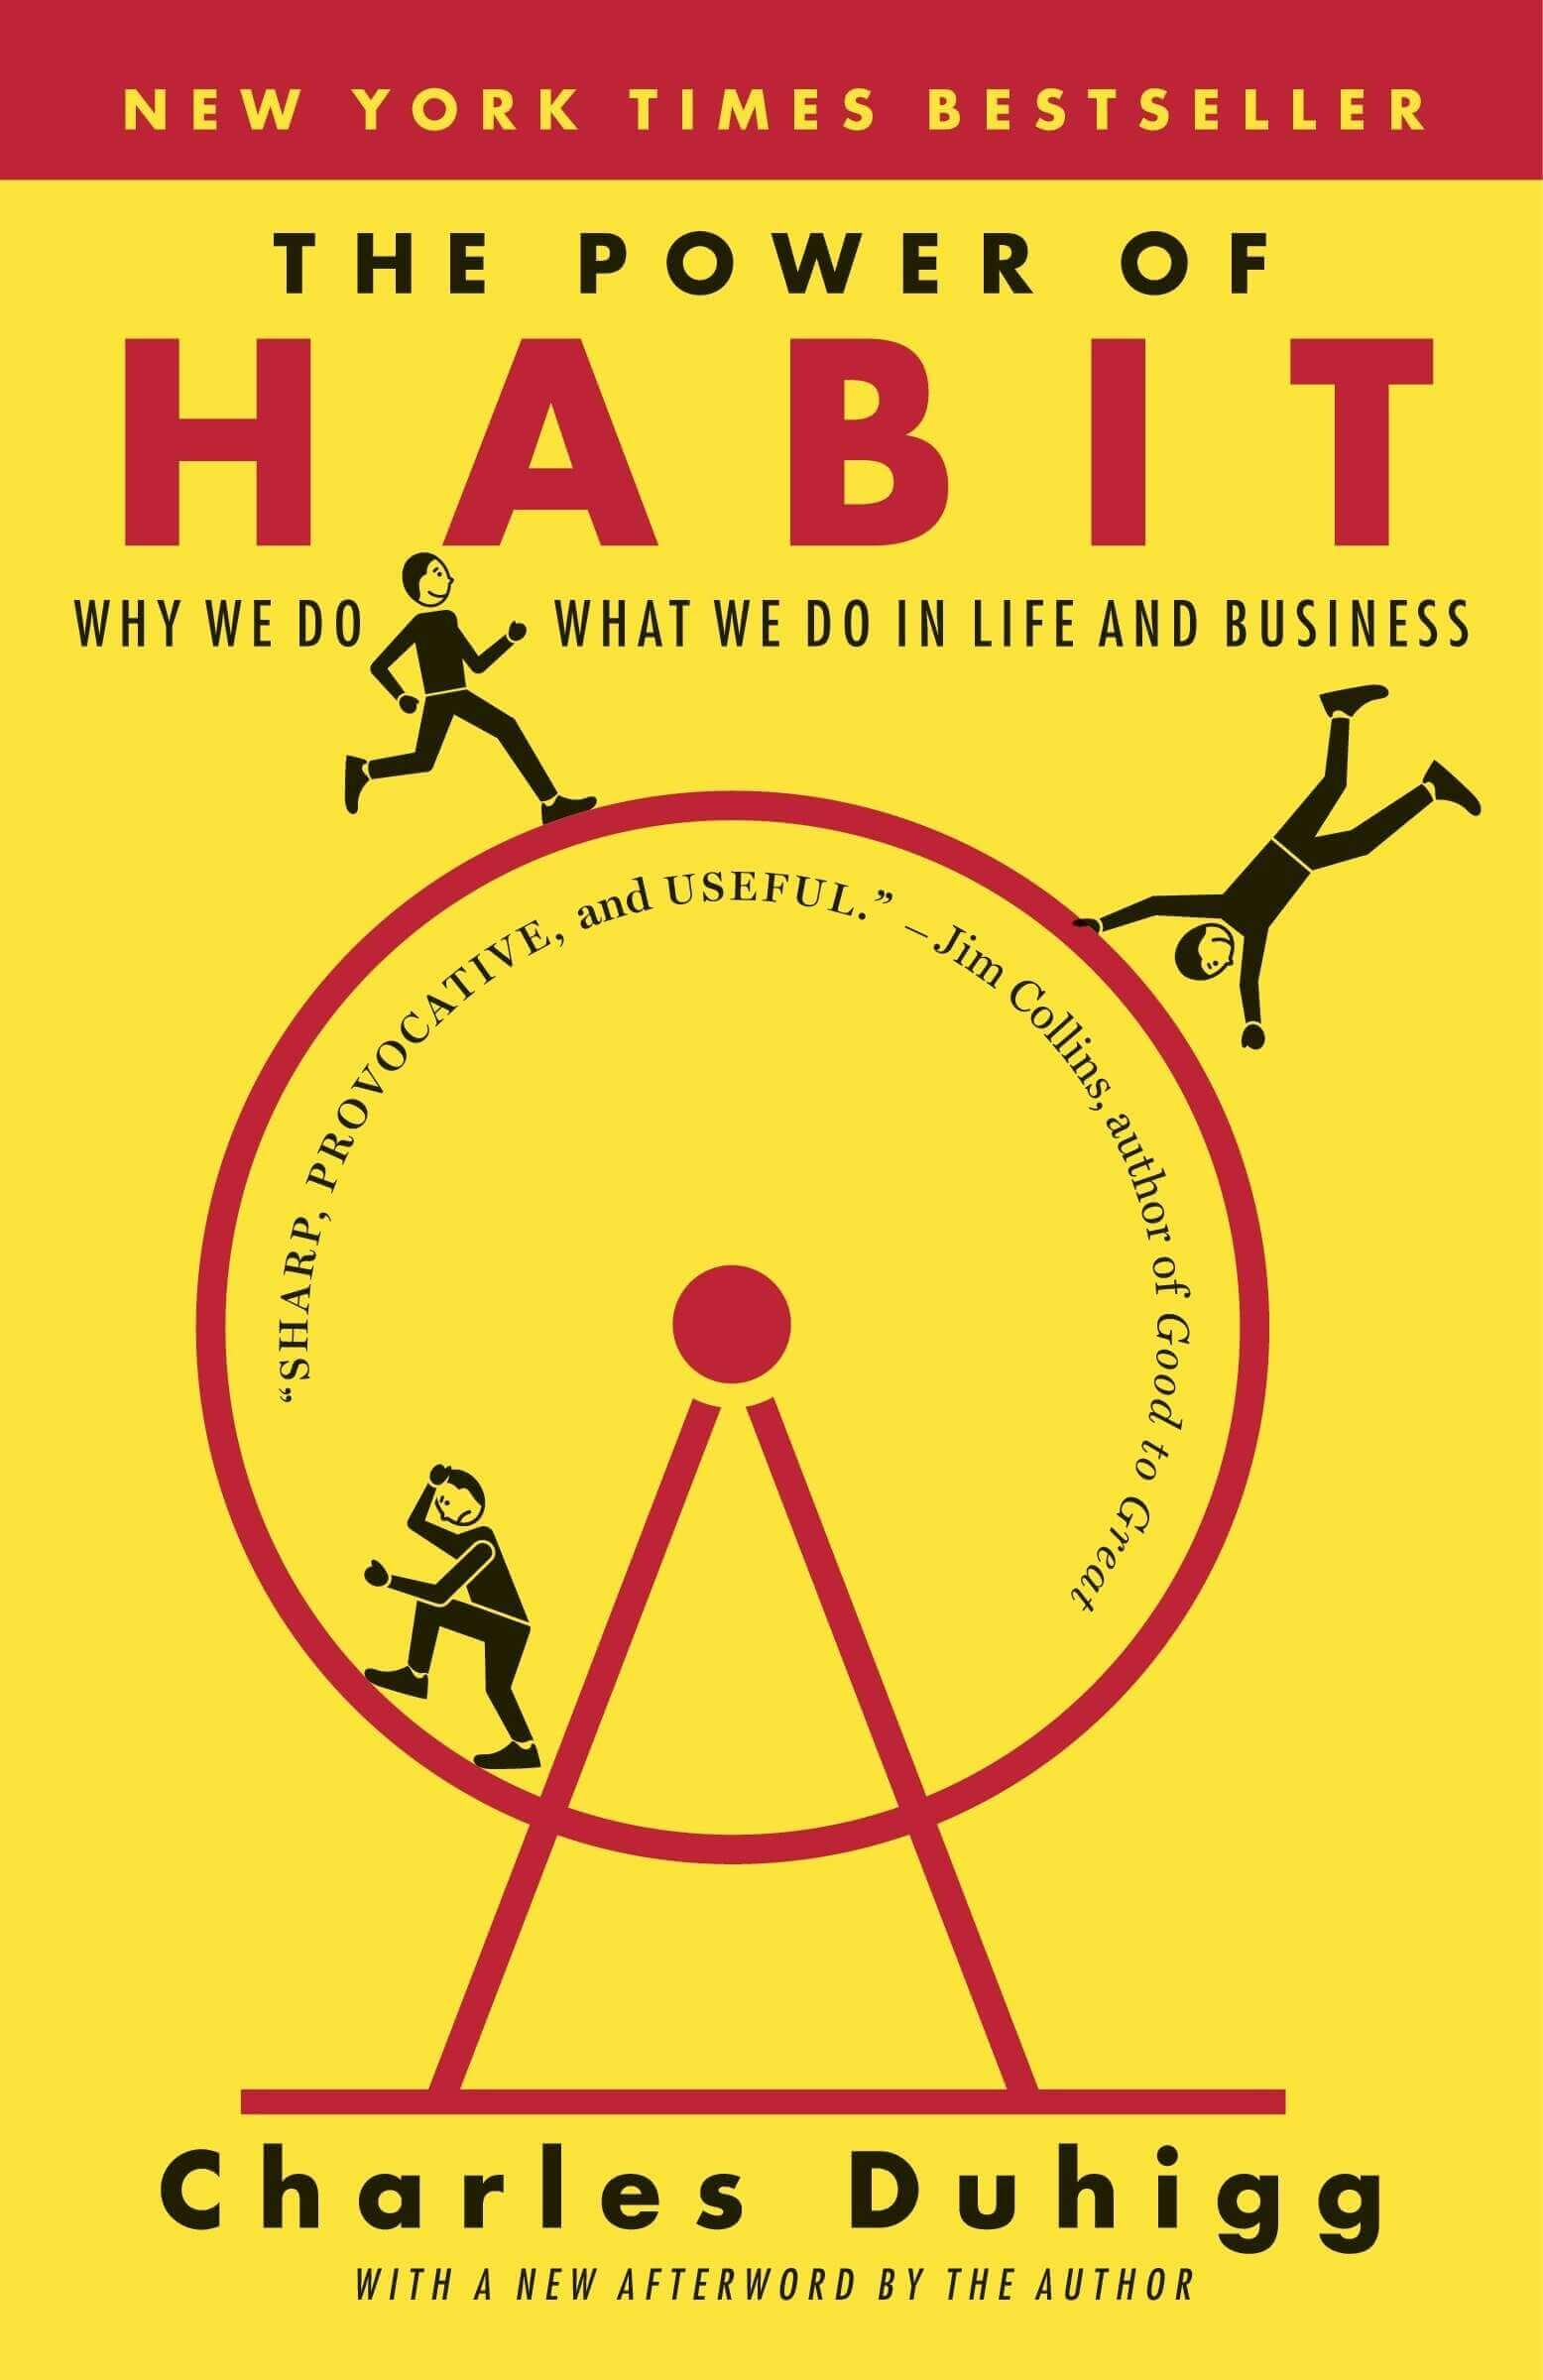 the-power-of-habit-charles-duhigg-book-cover.jpg